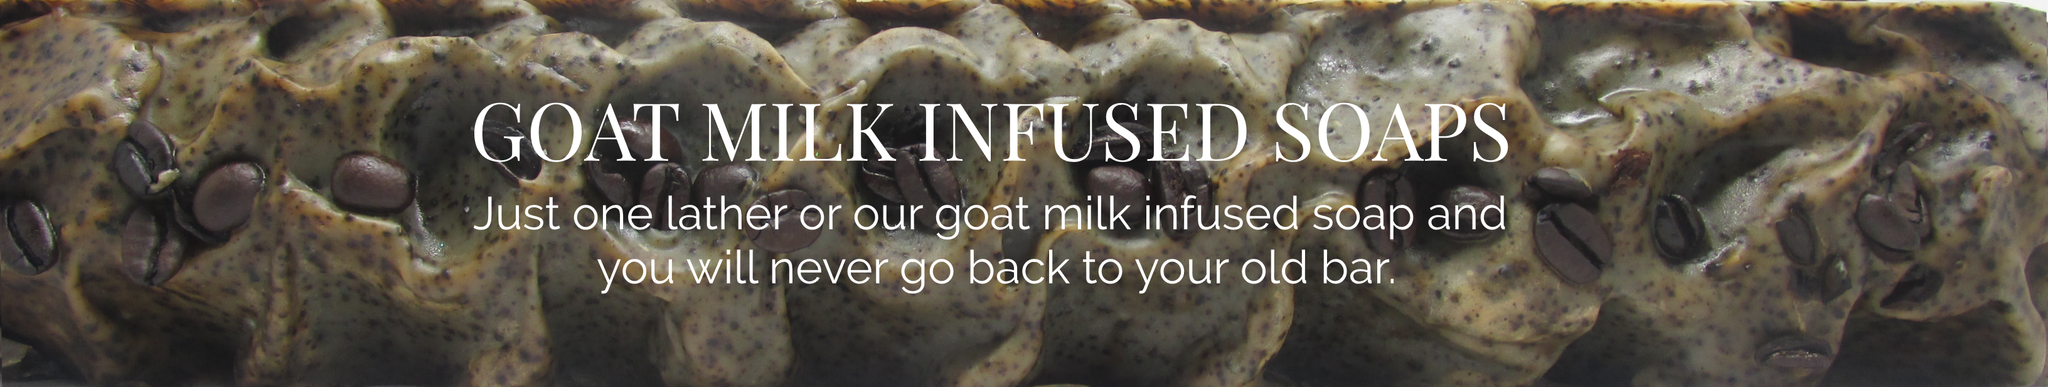 Goat Milk Infused Soaps